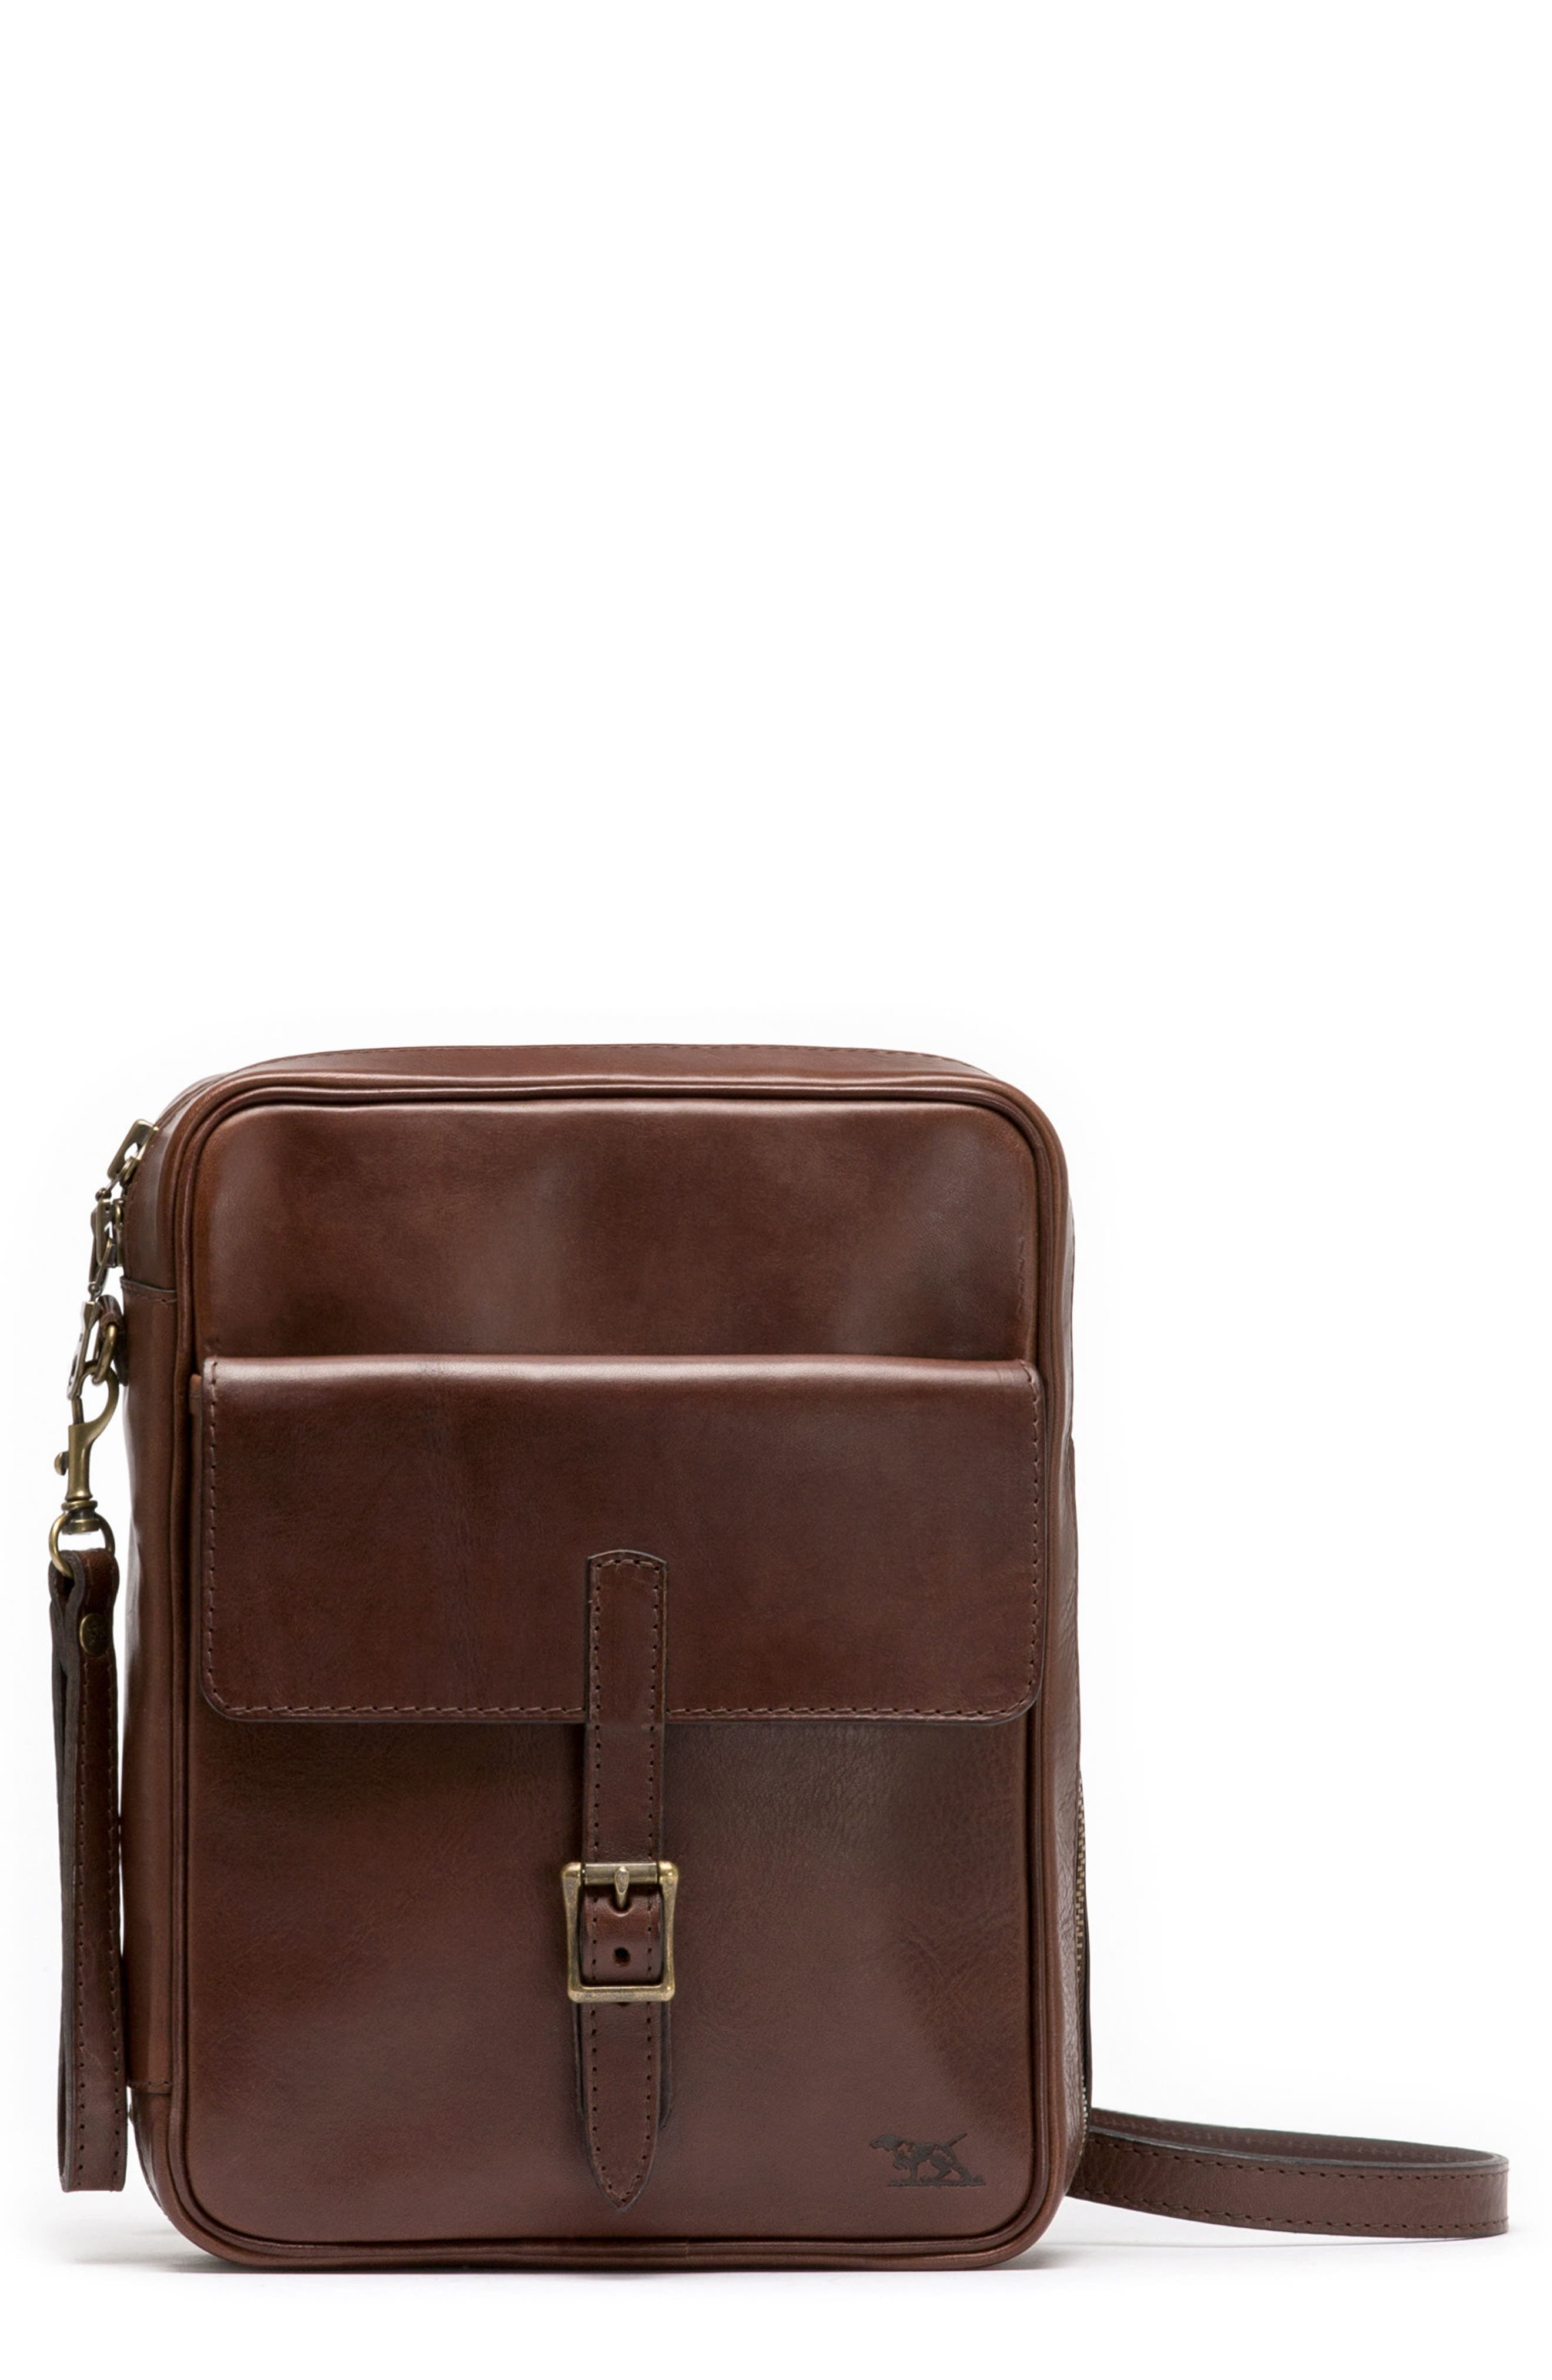 Main Image - Rodd & Gunn Cow Lane Crossbody Bag